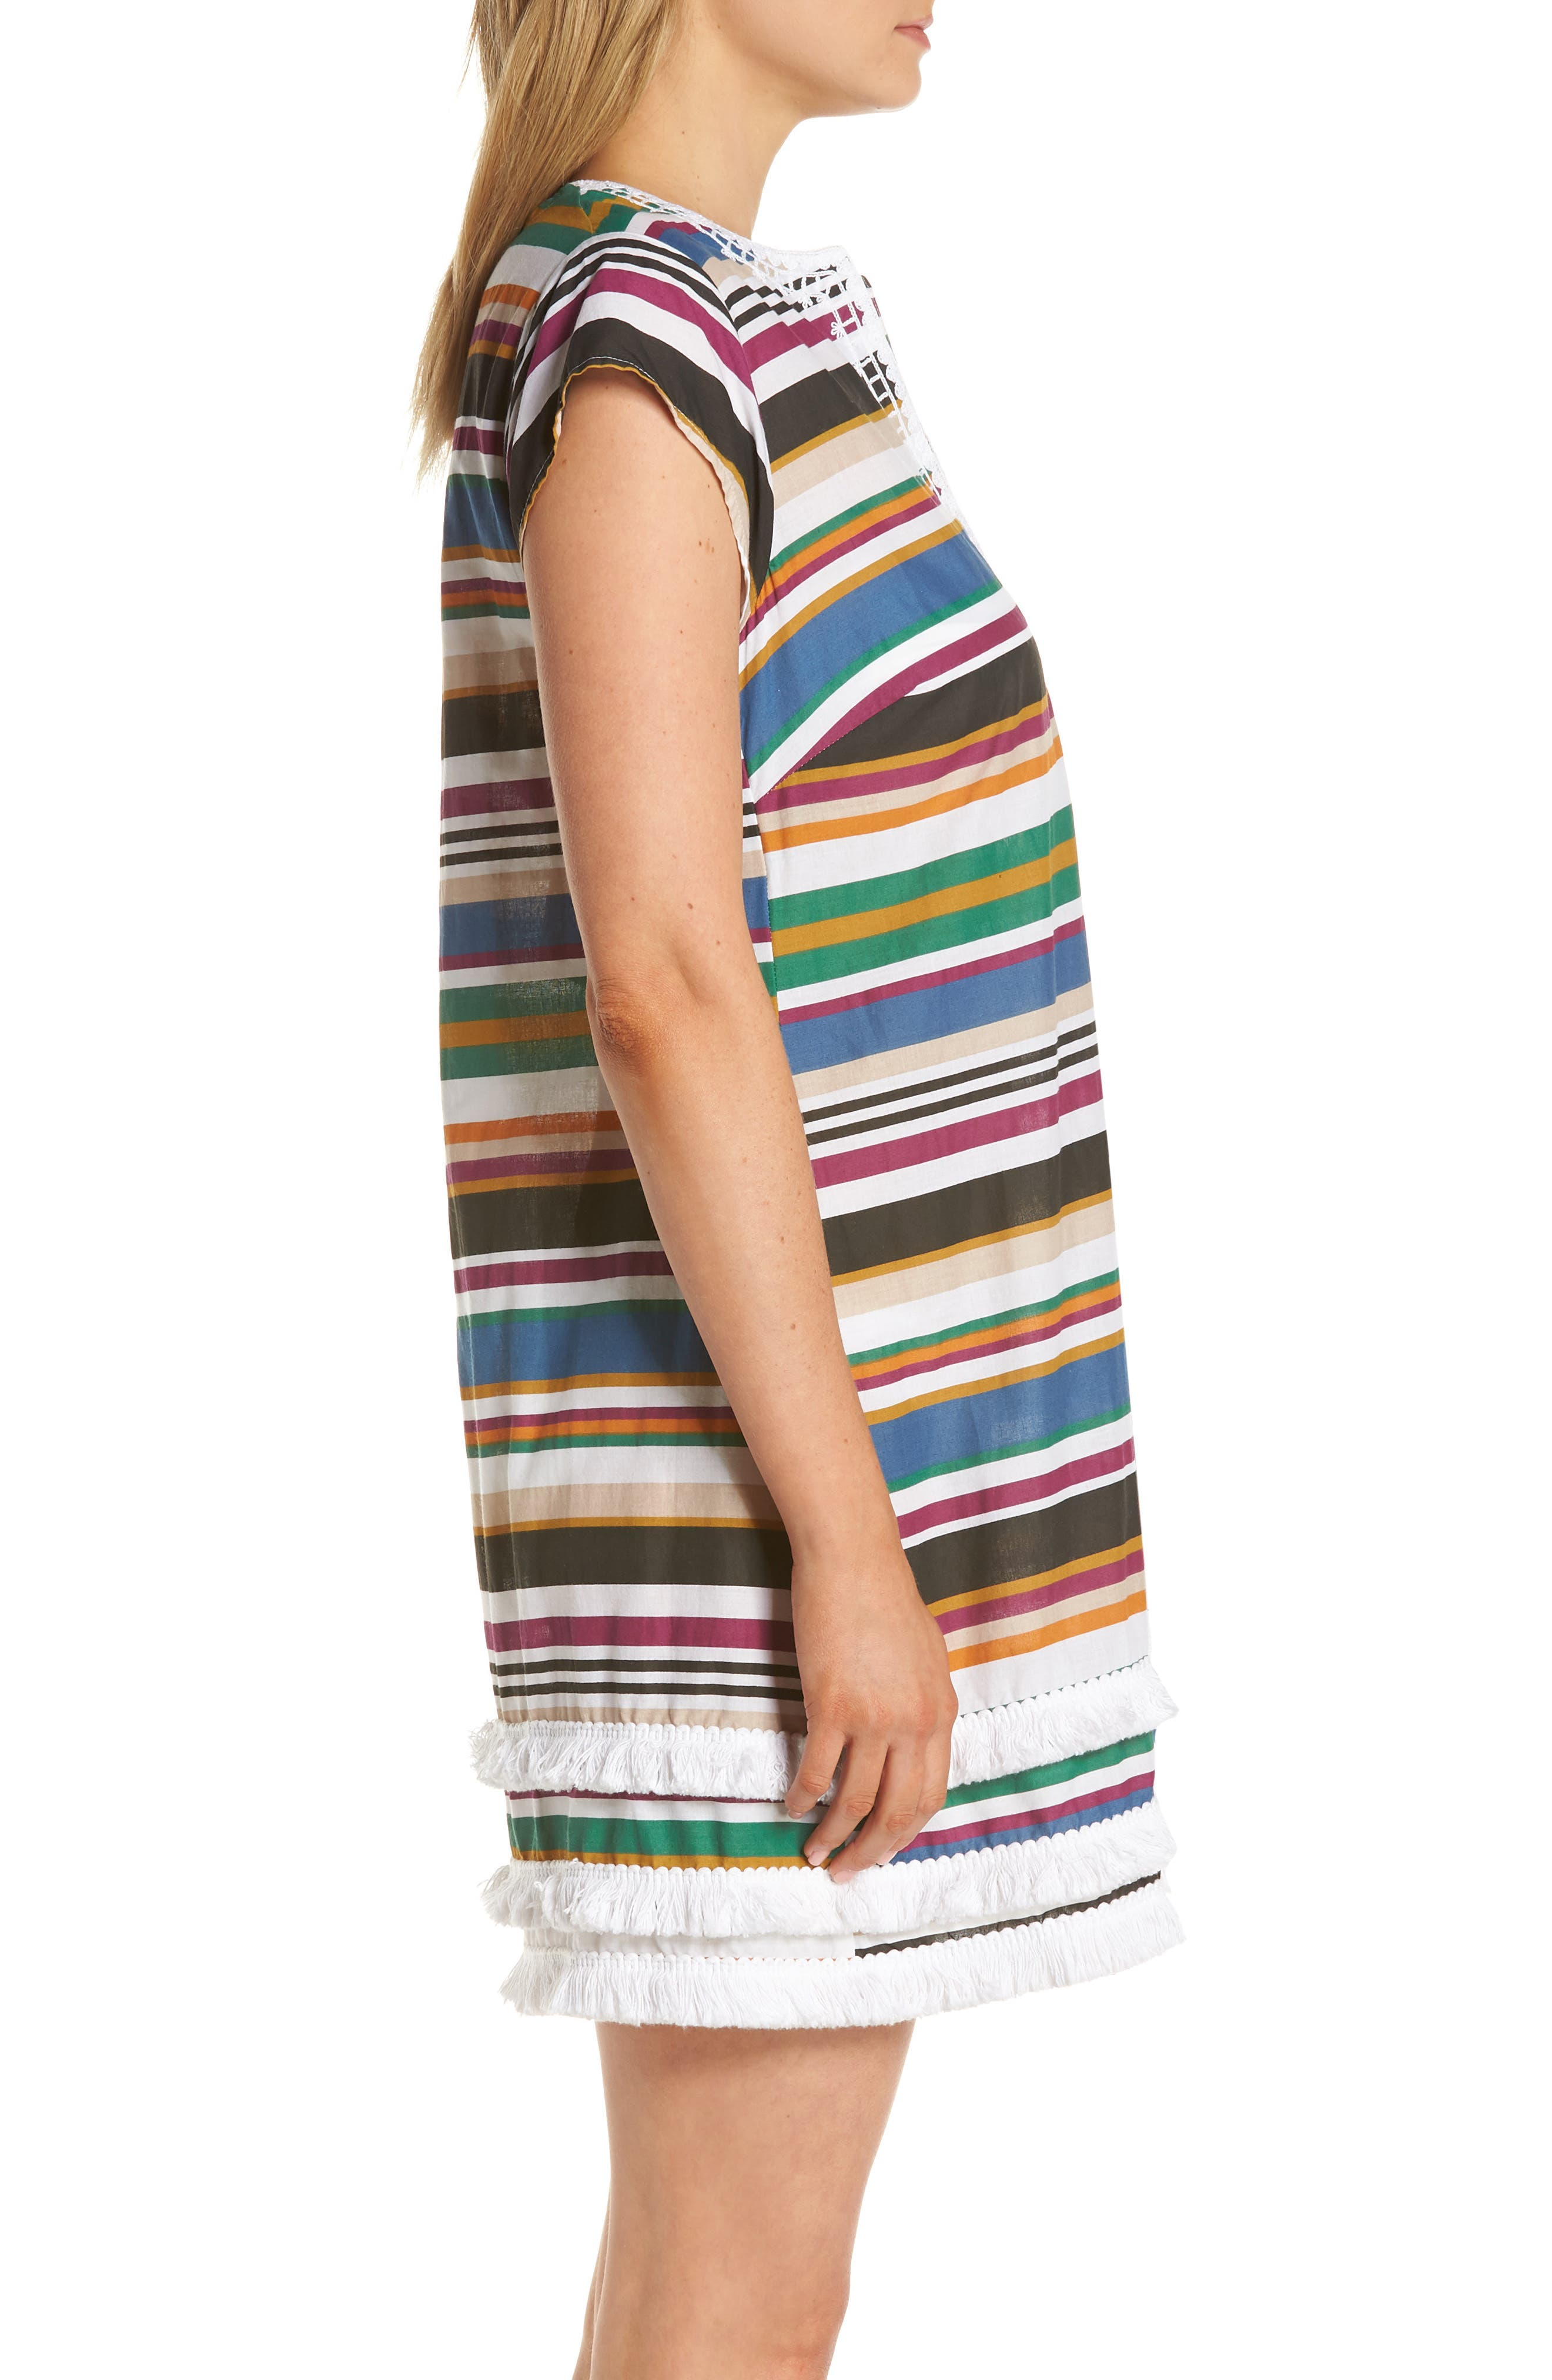 BLEU BY ROD BEATTIE,                             Under Cover Stripe Cover-Up Dress,                             Alternate thumbnail 3, color,                             NAVY/ NEUTRAL